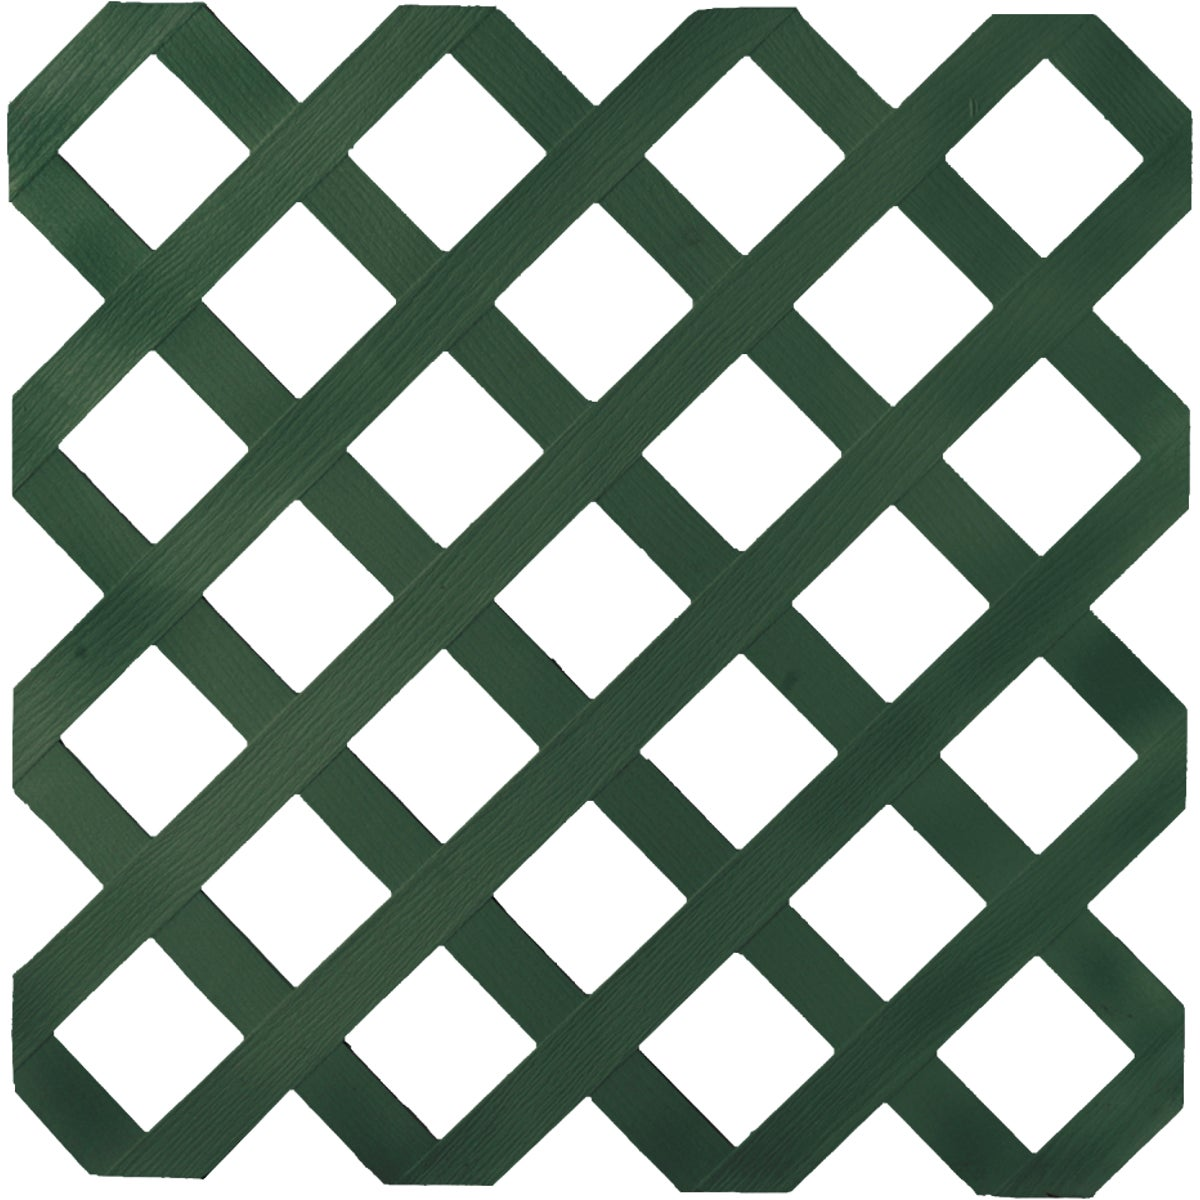 4X8 DK GRN LATTICE - 79910 by Ufpi   Plstc Lattice